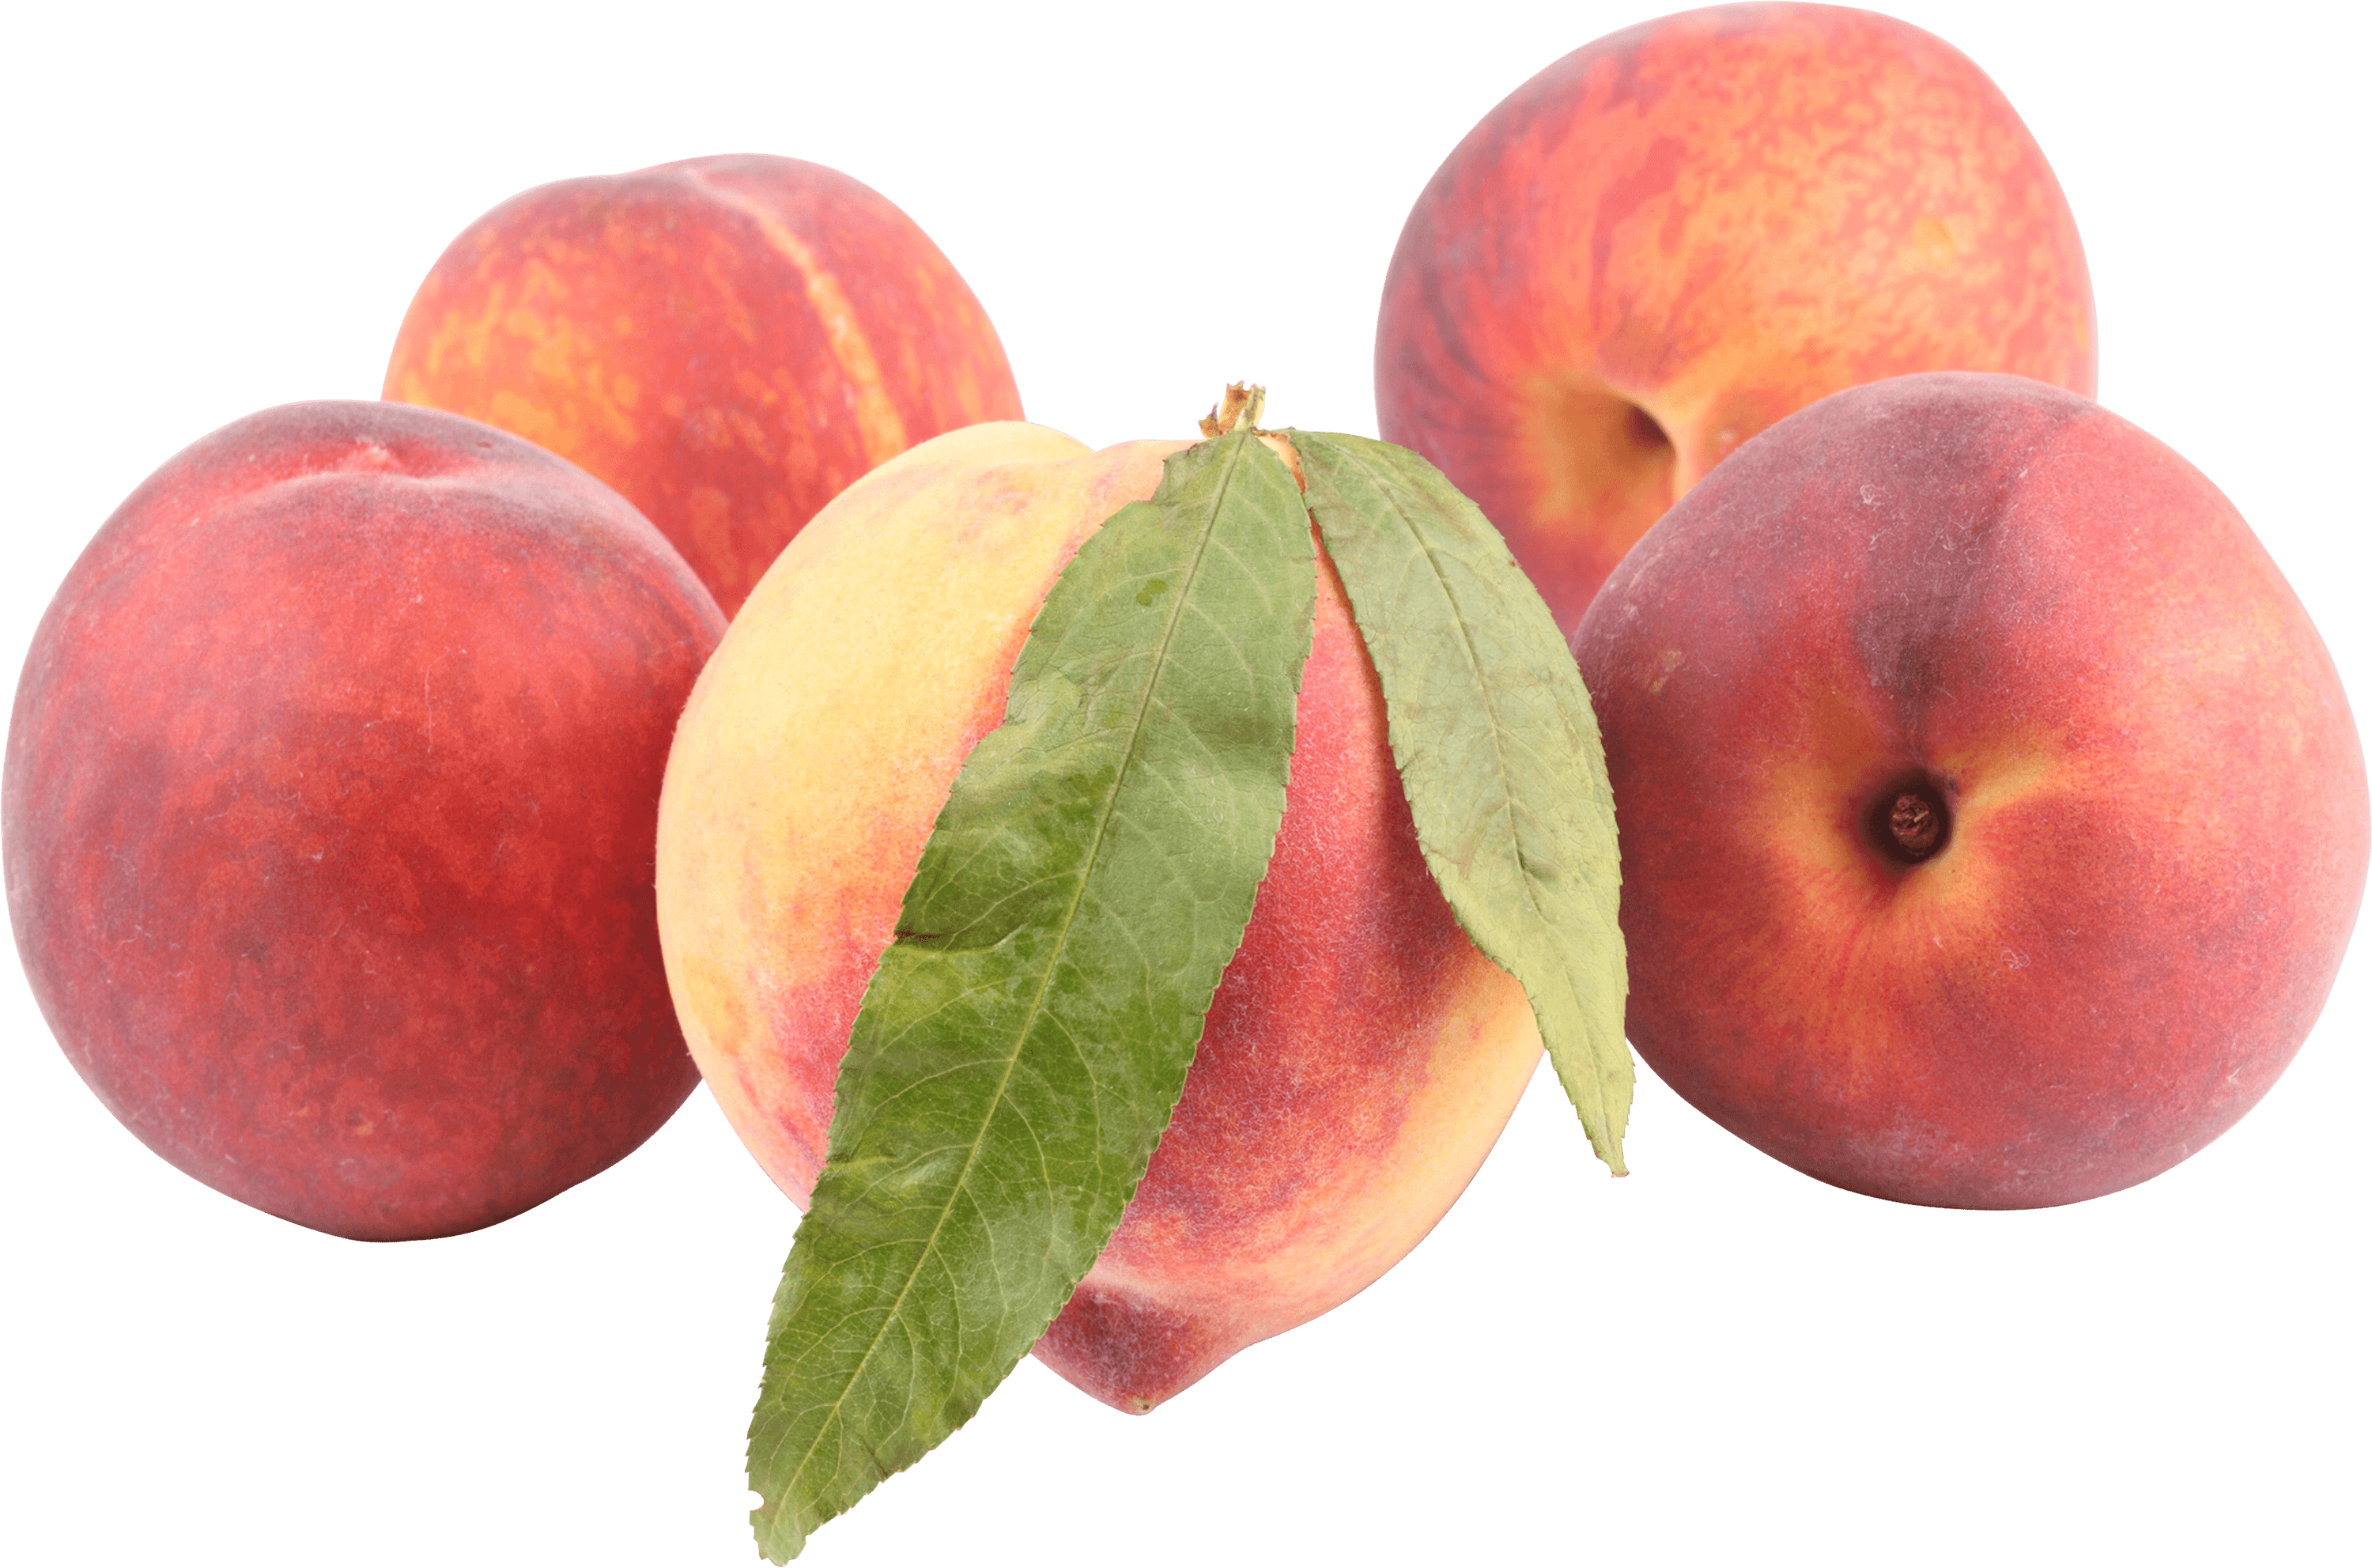 Peaches transparent. Png stickpng food fruits